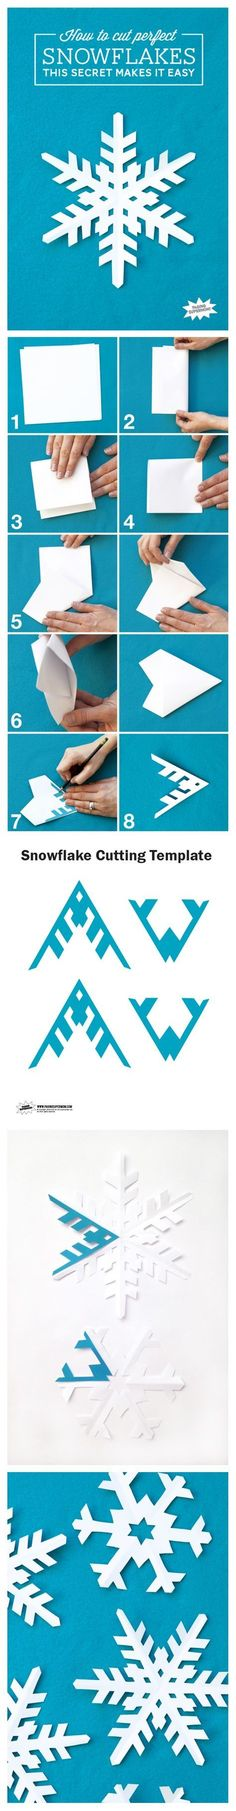 My kids love to cut out snowflakes using the good, old method where you fold up paper and cut out . Read moreHow to Cut Perfect Snowflakes Paper Snowflakes, Christmas Snowflakes, Christmas Art, Christmas Ornaments, Paper Stars, Snowflake Template, Snowflake Pattern, Snowflake Snowflake, Decoration Creche